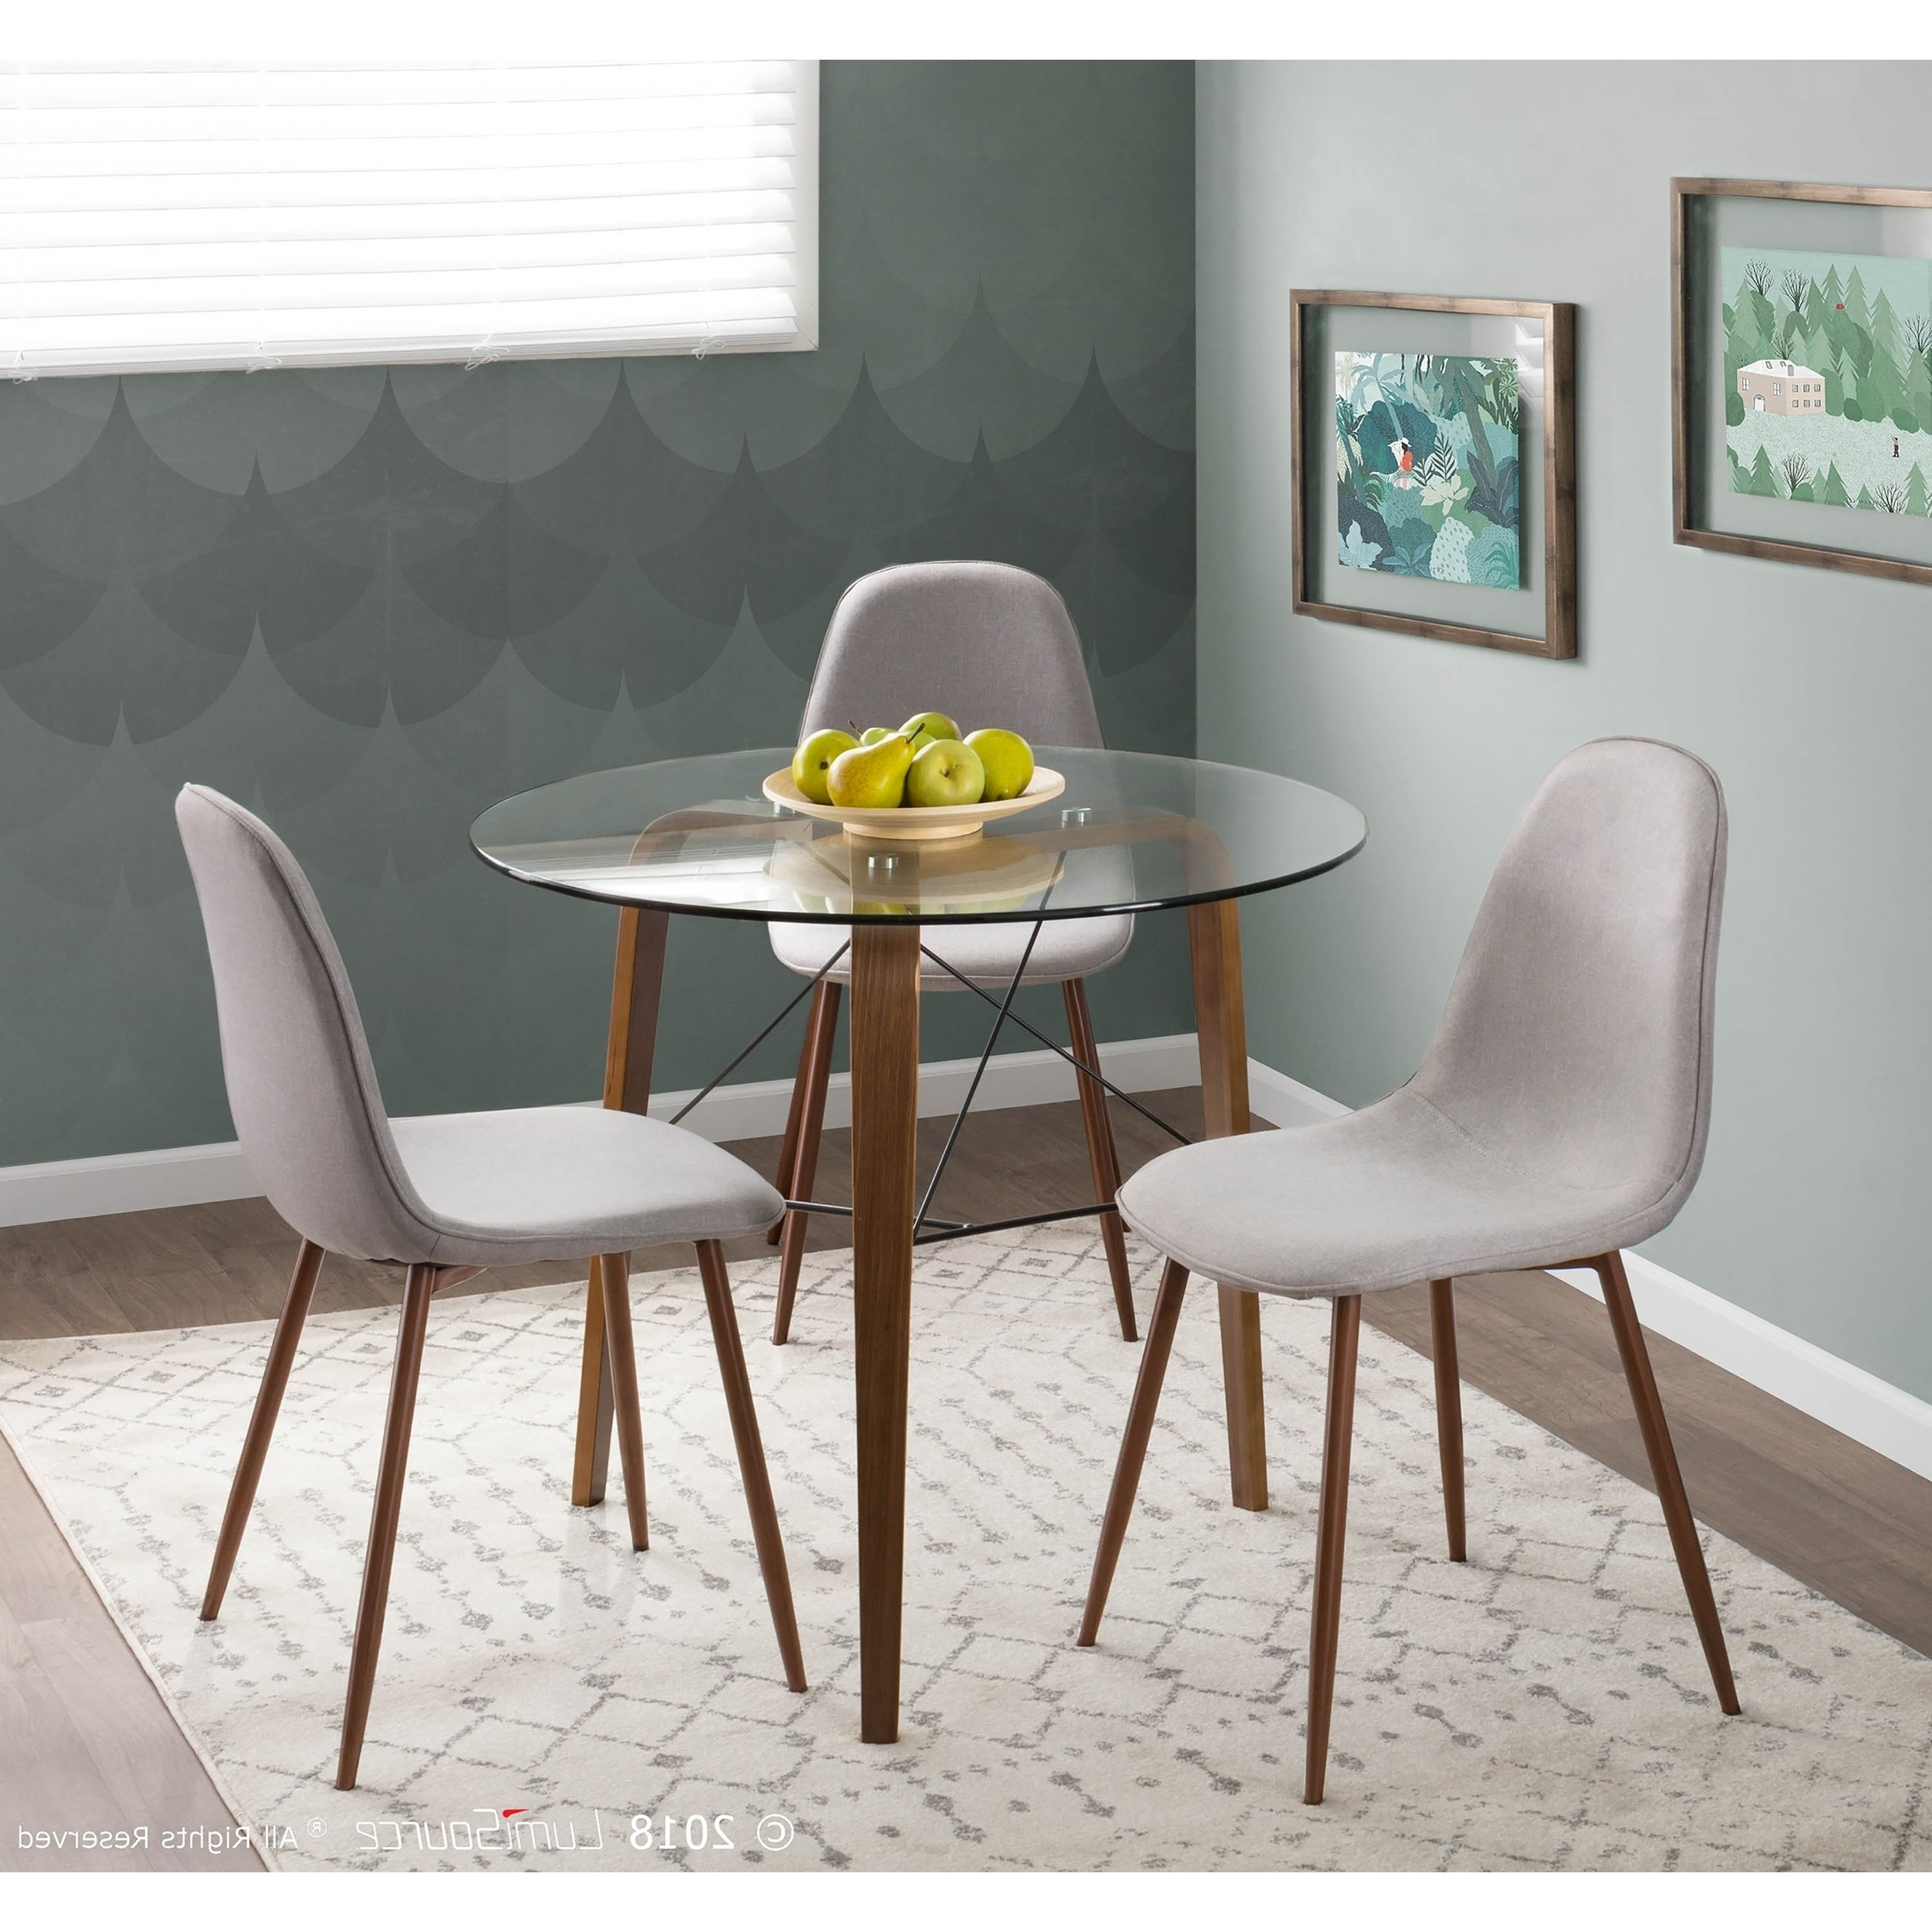 Shop Pebble Mid Century Modern Upholstered Accent / Dining Chair Within Preferred Caden 6 Piece Dining Sets With Upholstered Side Chair (View 22 of 25)